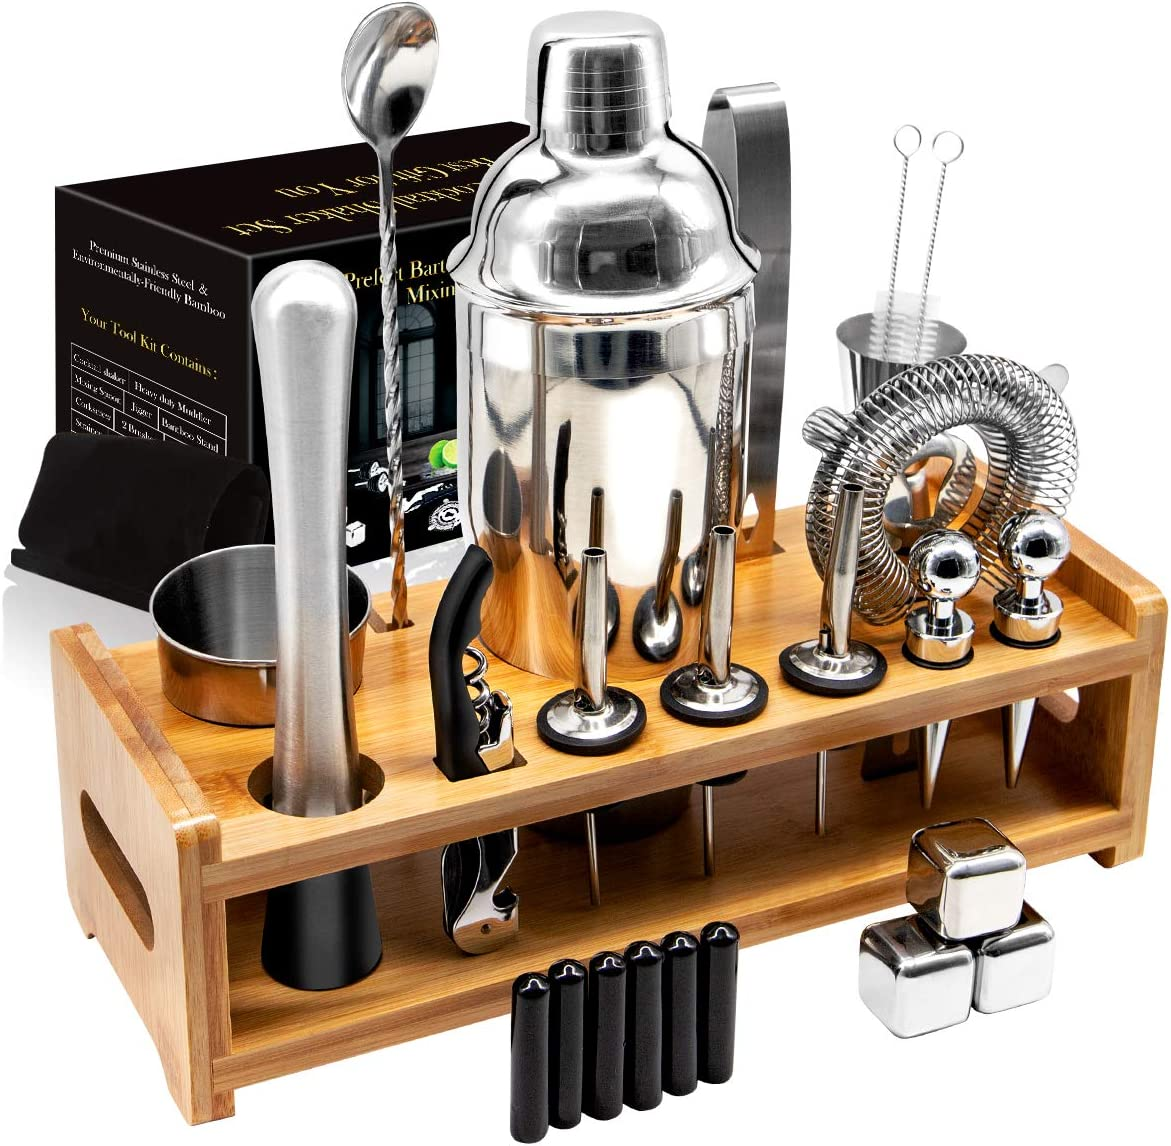 26Pcs Stainless Steel Cocktail Bar Tool Set,Perfect Bar Accessories for Home Bar Set and Martini Mixer Kit with Bamboo Stand for Making Awesome Drink Mixing Experience Ideal Gift Set